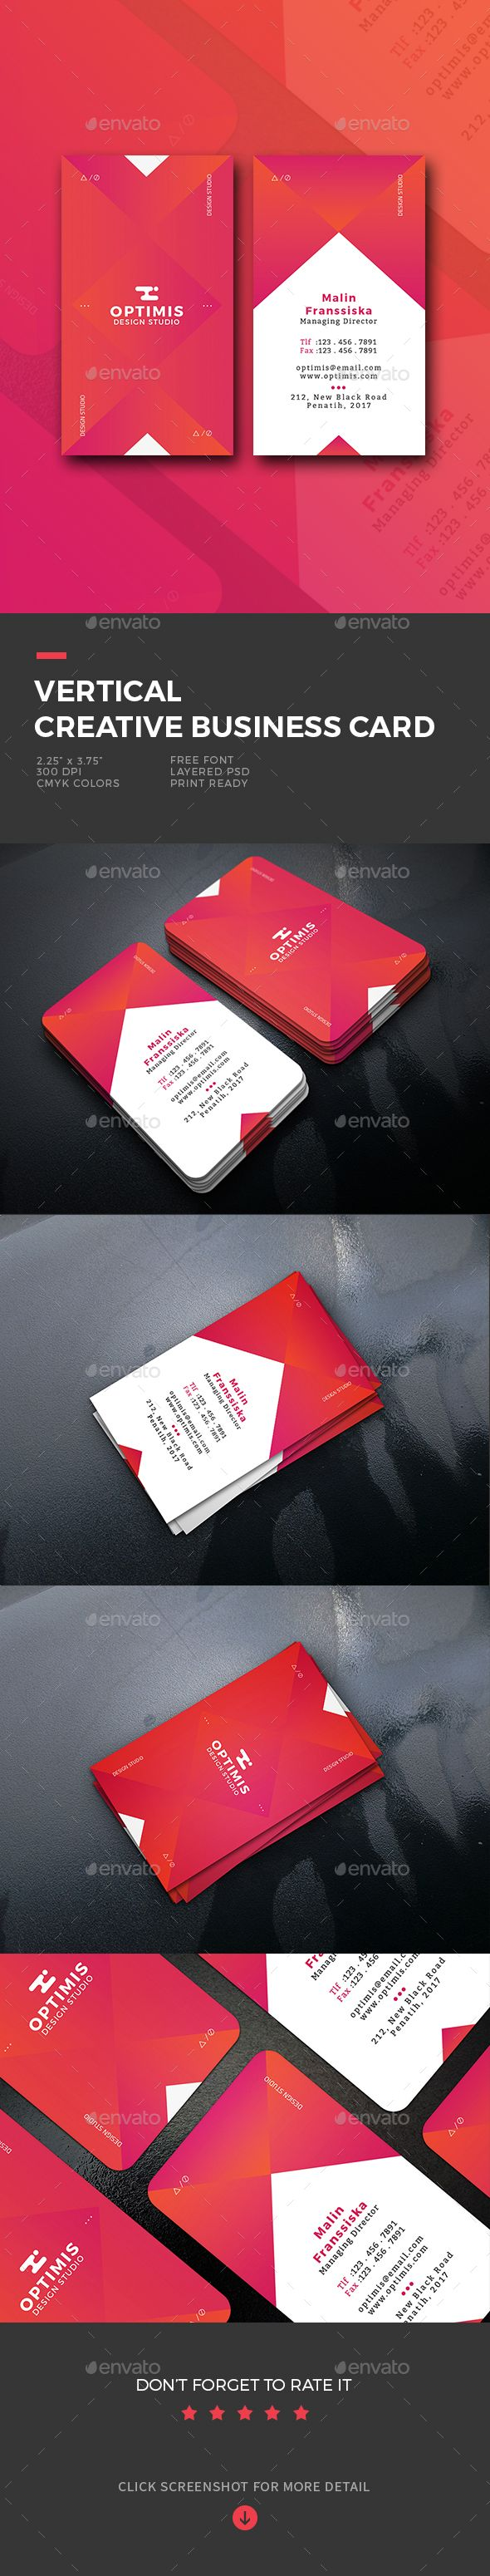 Vertical creative business card business cards print templates unique business cards reheart Image collections